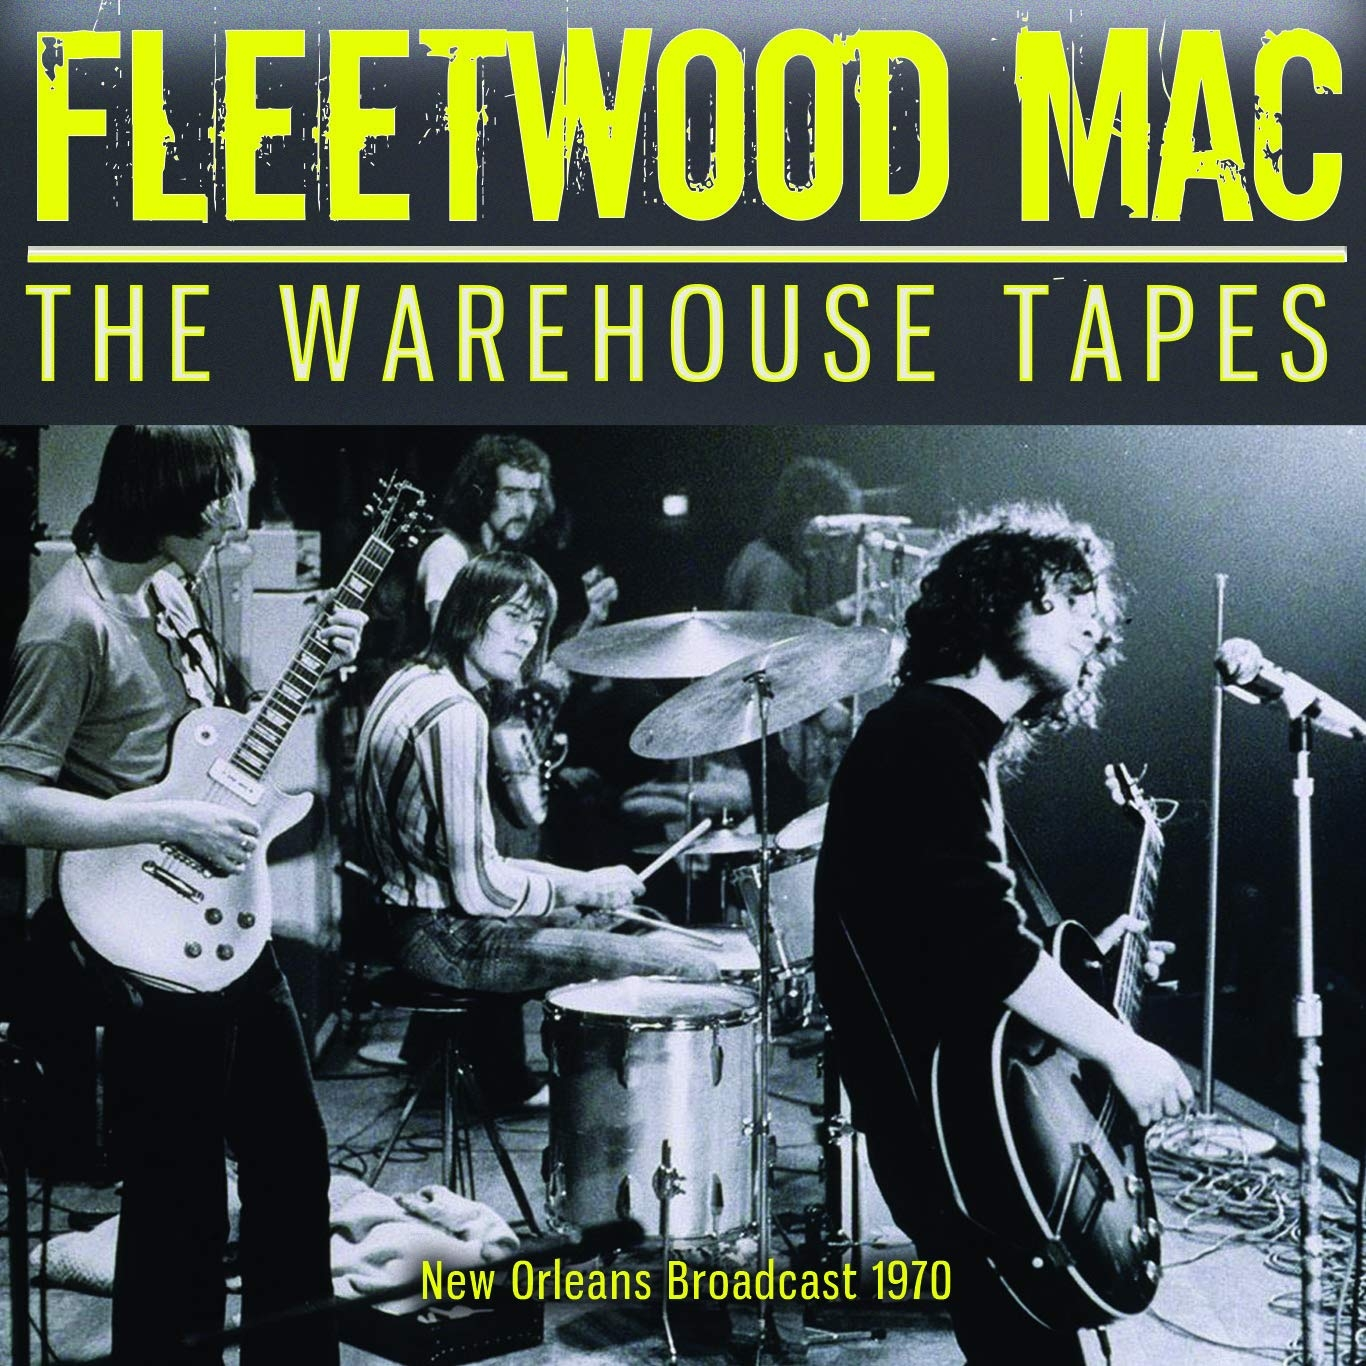 The Warehouse Tapes Live 1970